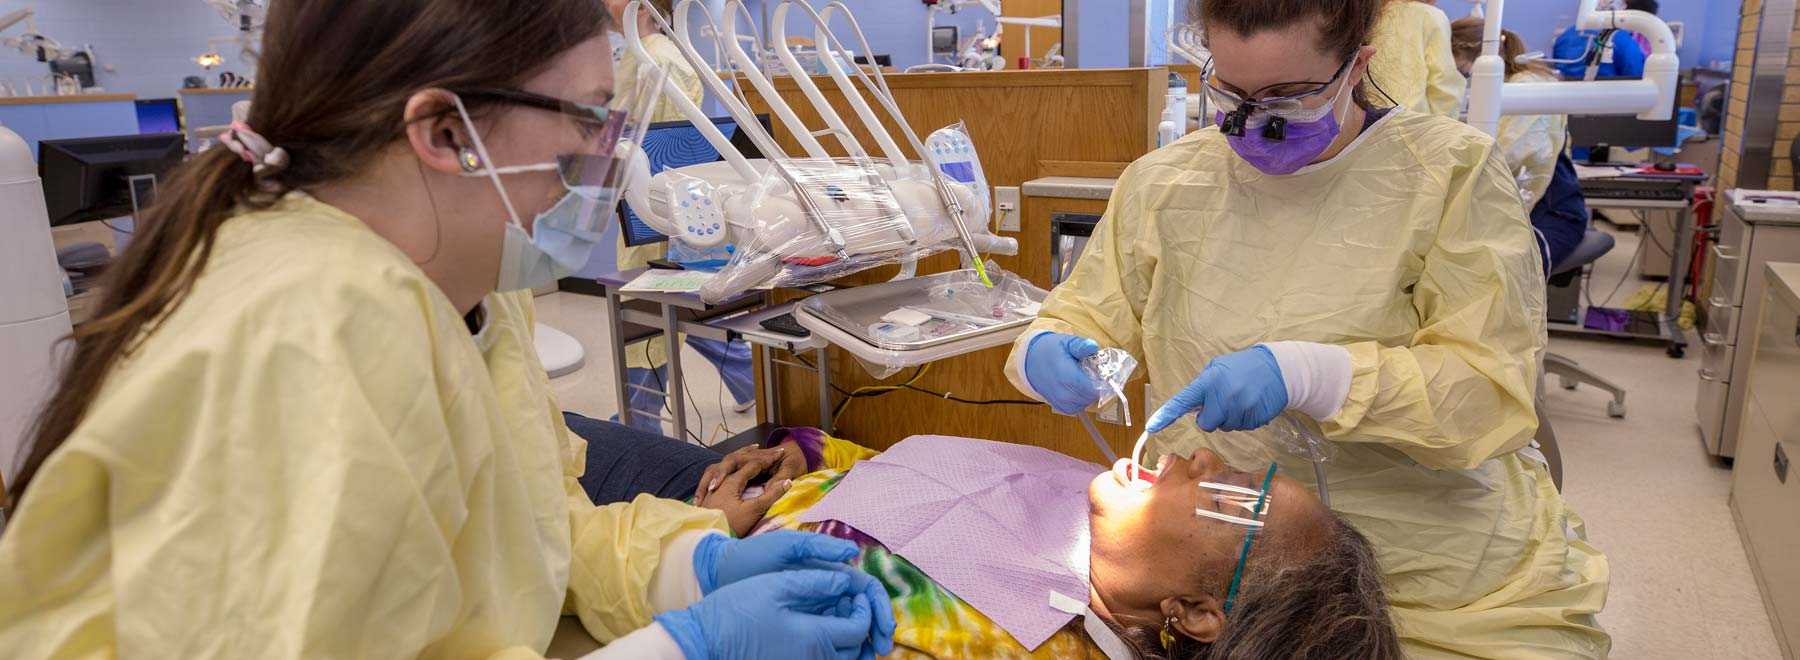 Dental Mission Week provides free dental care to uninsured Mississippians